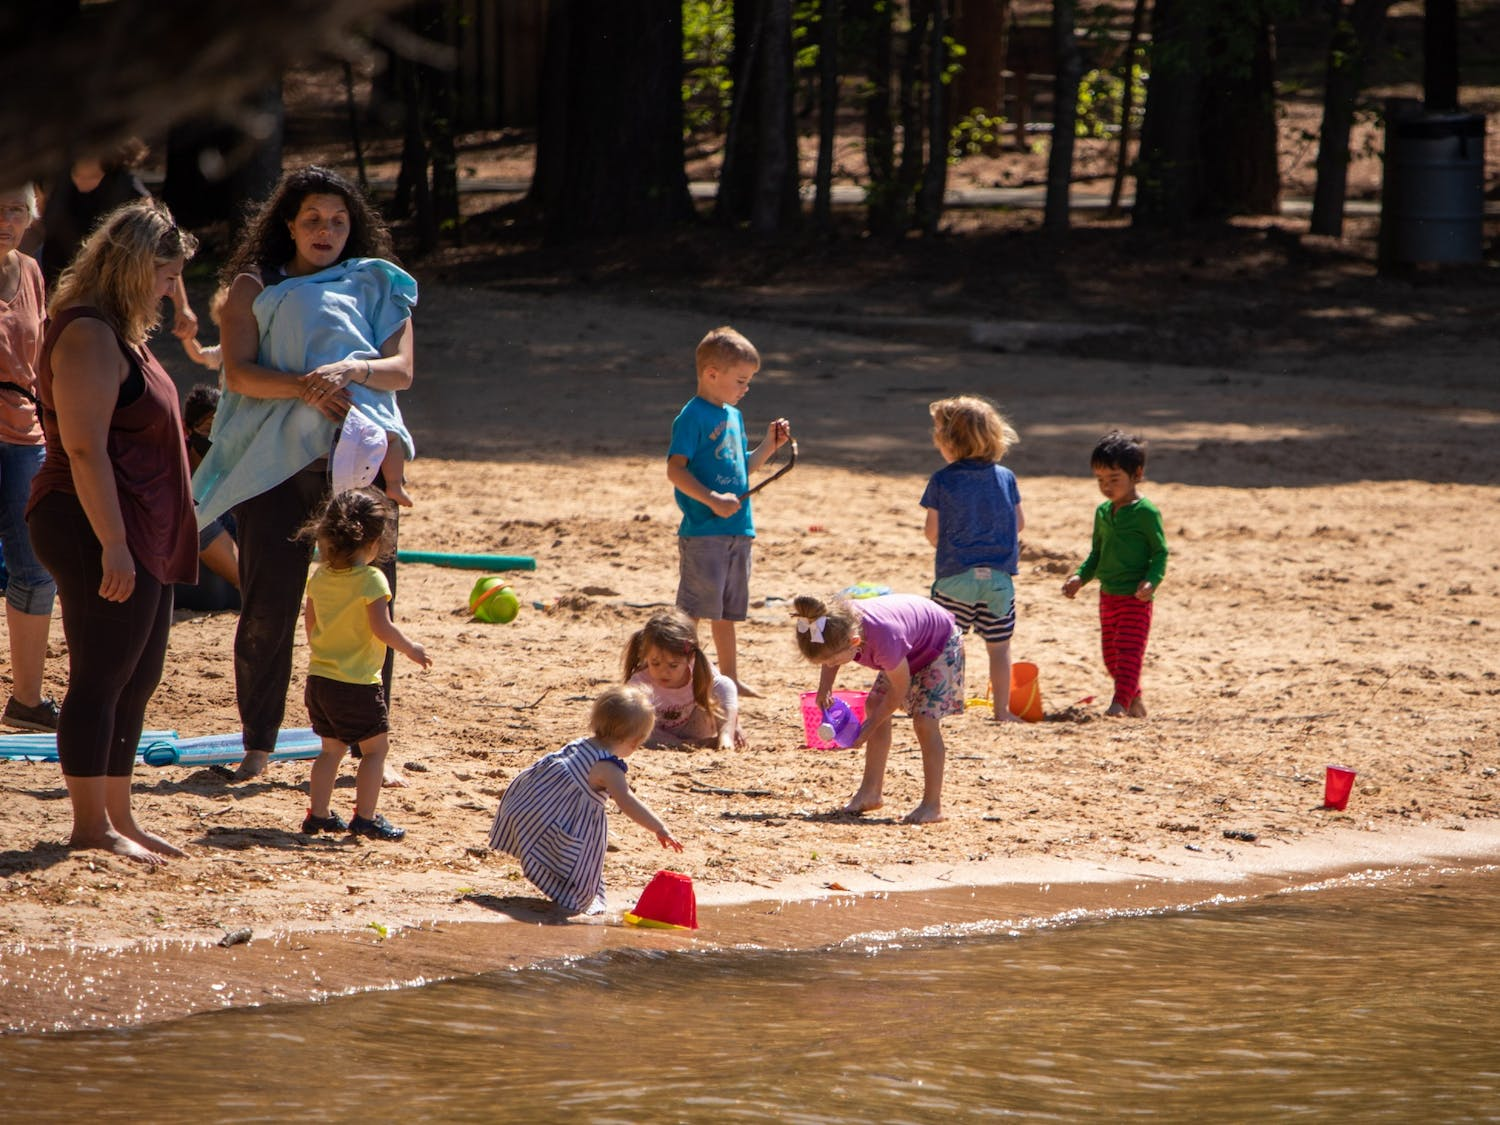 Families join together to enjoy the warm weather at Jetton Park in Cornelius, NC on Monday, April 12, 2021.